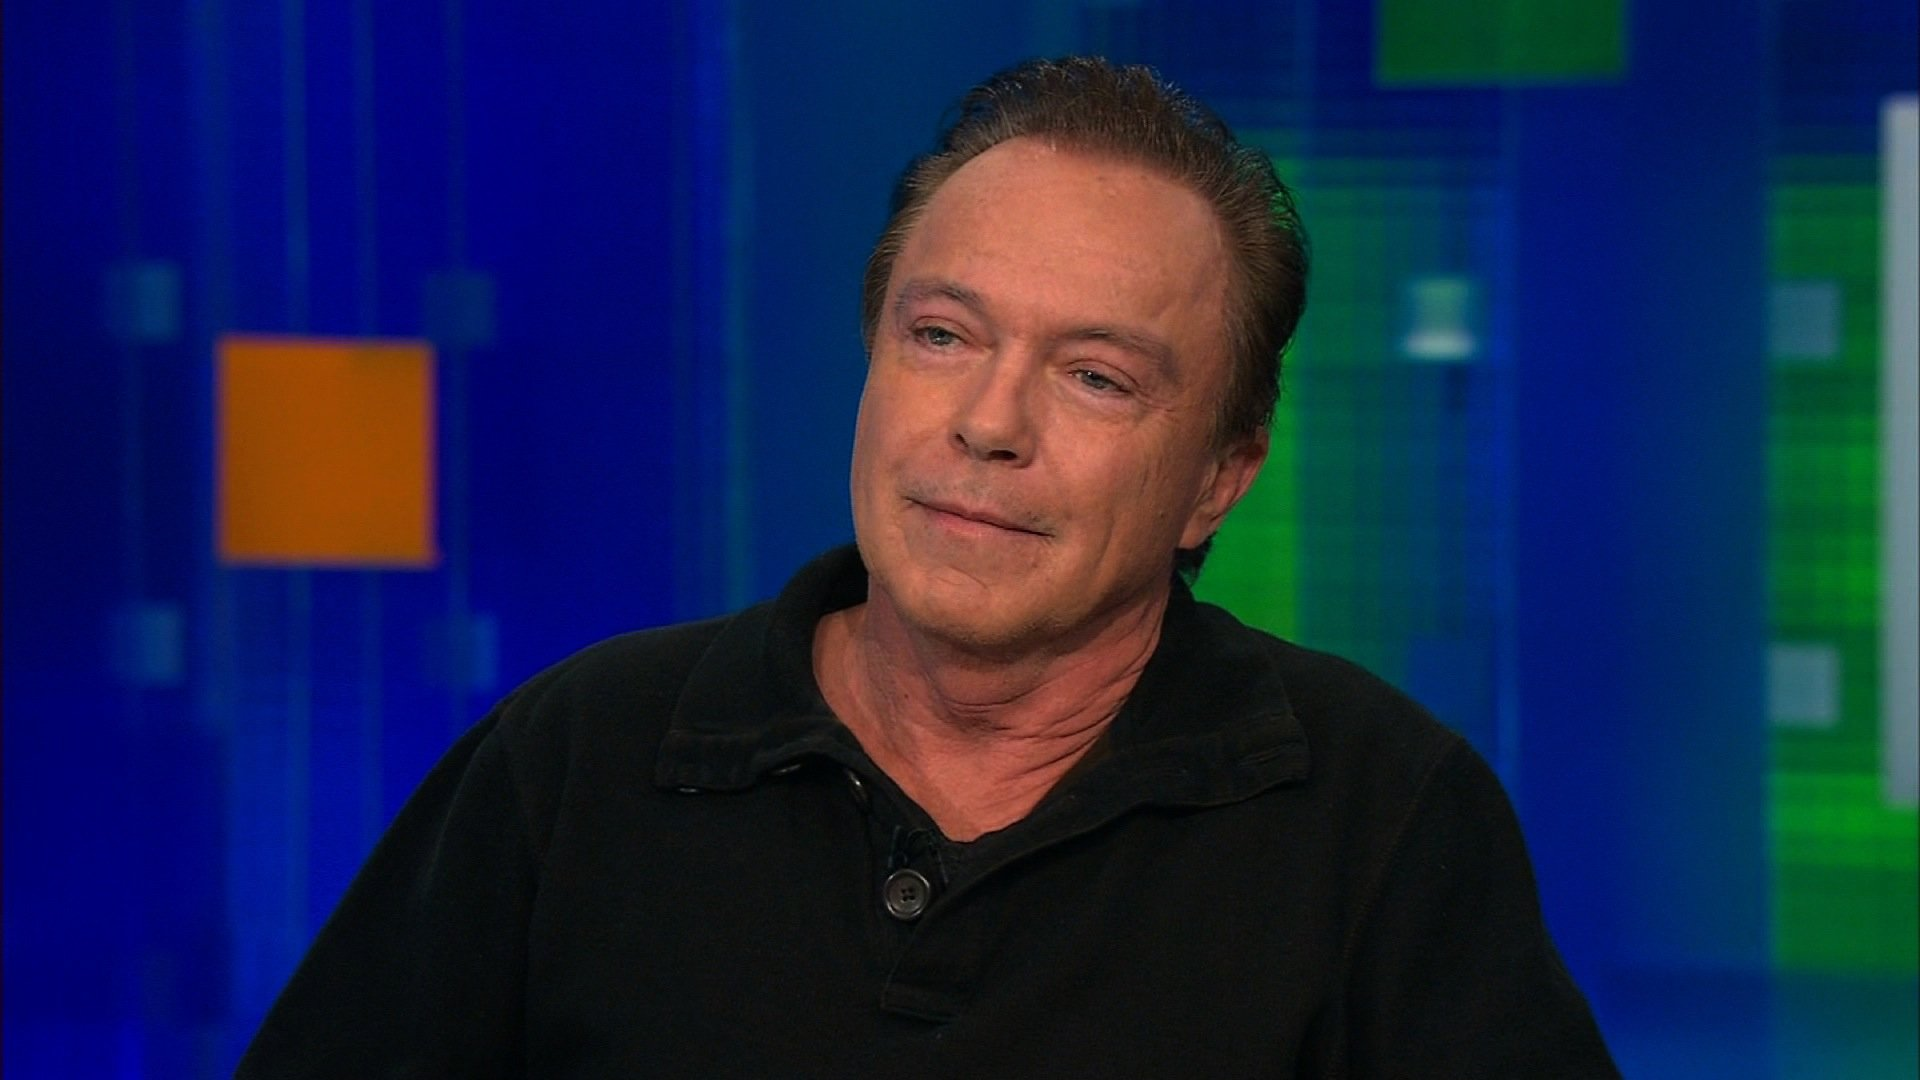 David Cassidy, the 66-year-old singer and actor, says he is battling dementia. (Credit: CNN)